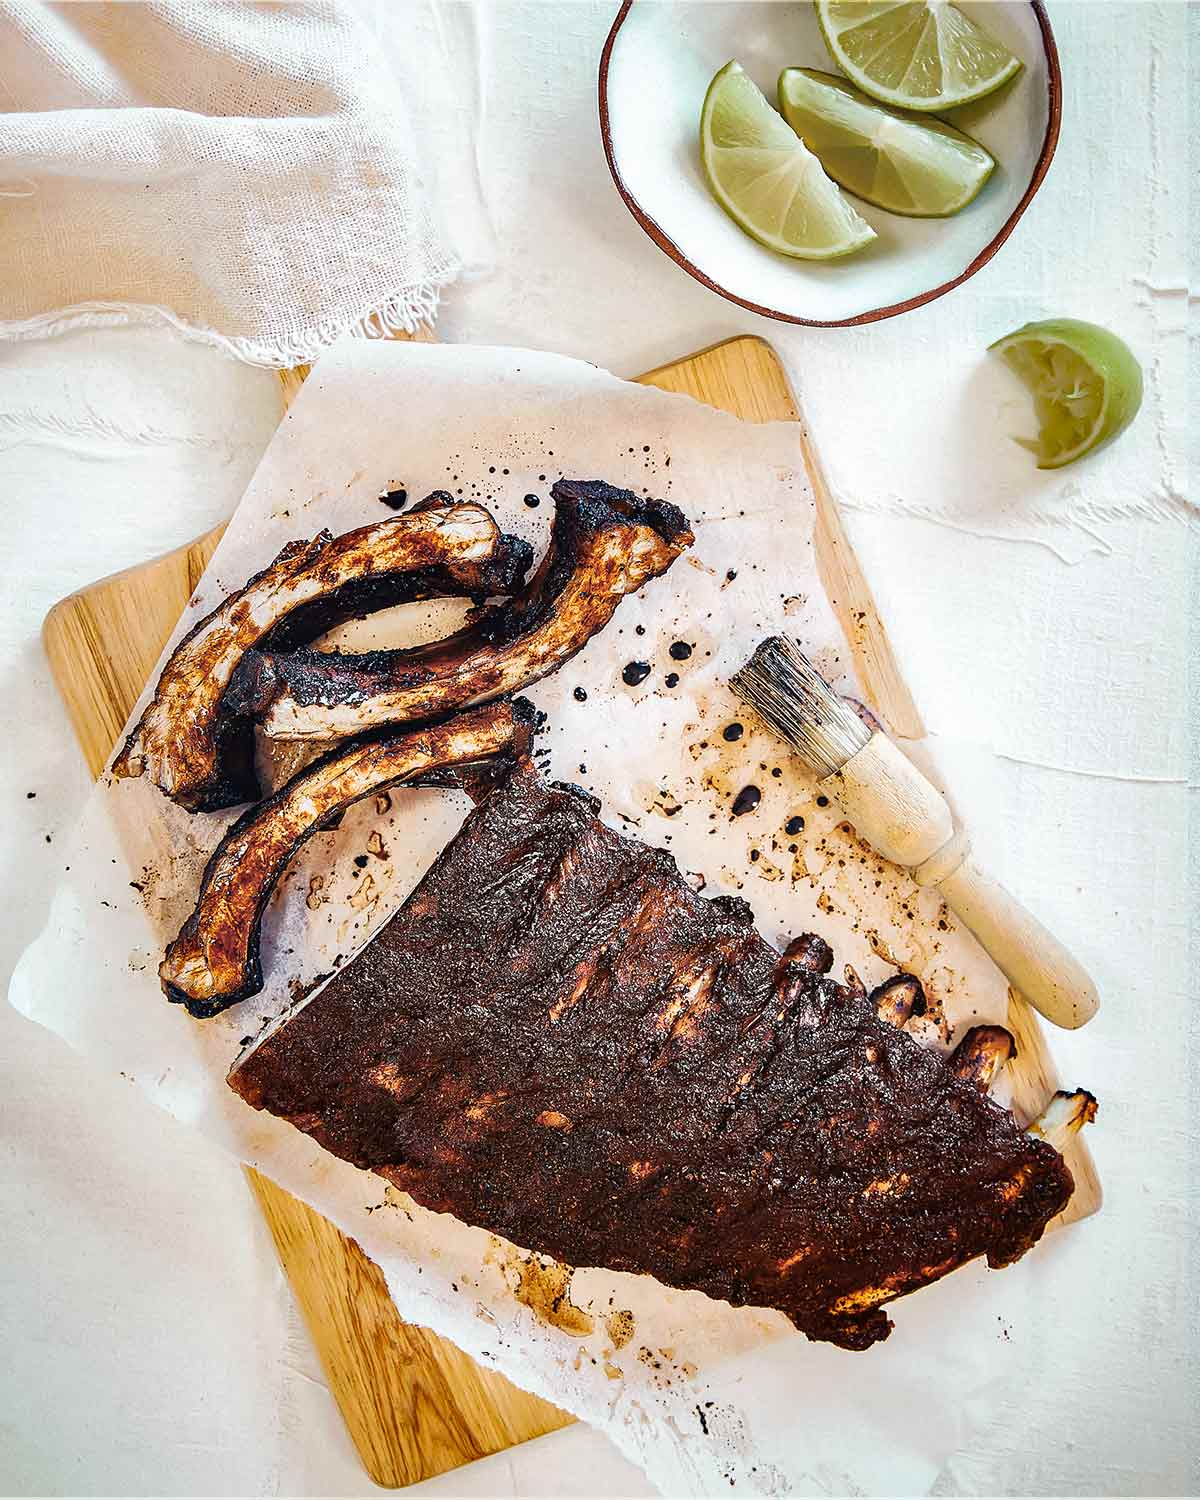 A rack of Vietnamese pork ribs on a sheet of parchment on a cutting board with a basting brush and a bowl of lime wedges nearby.